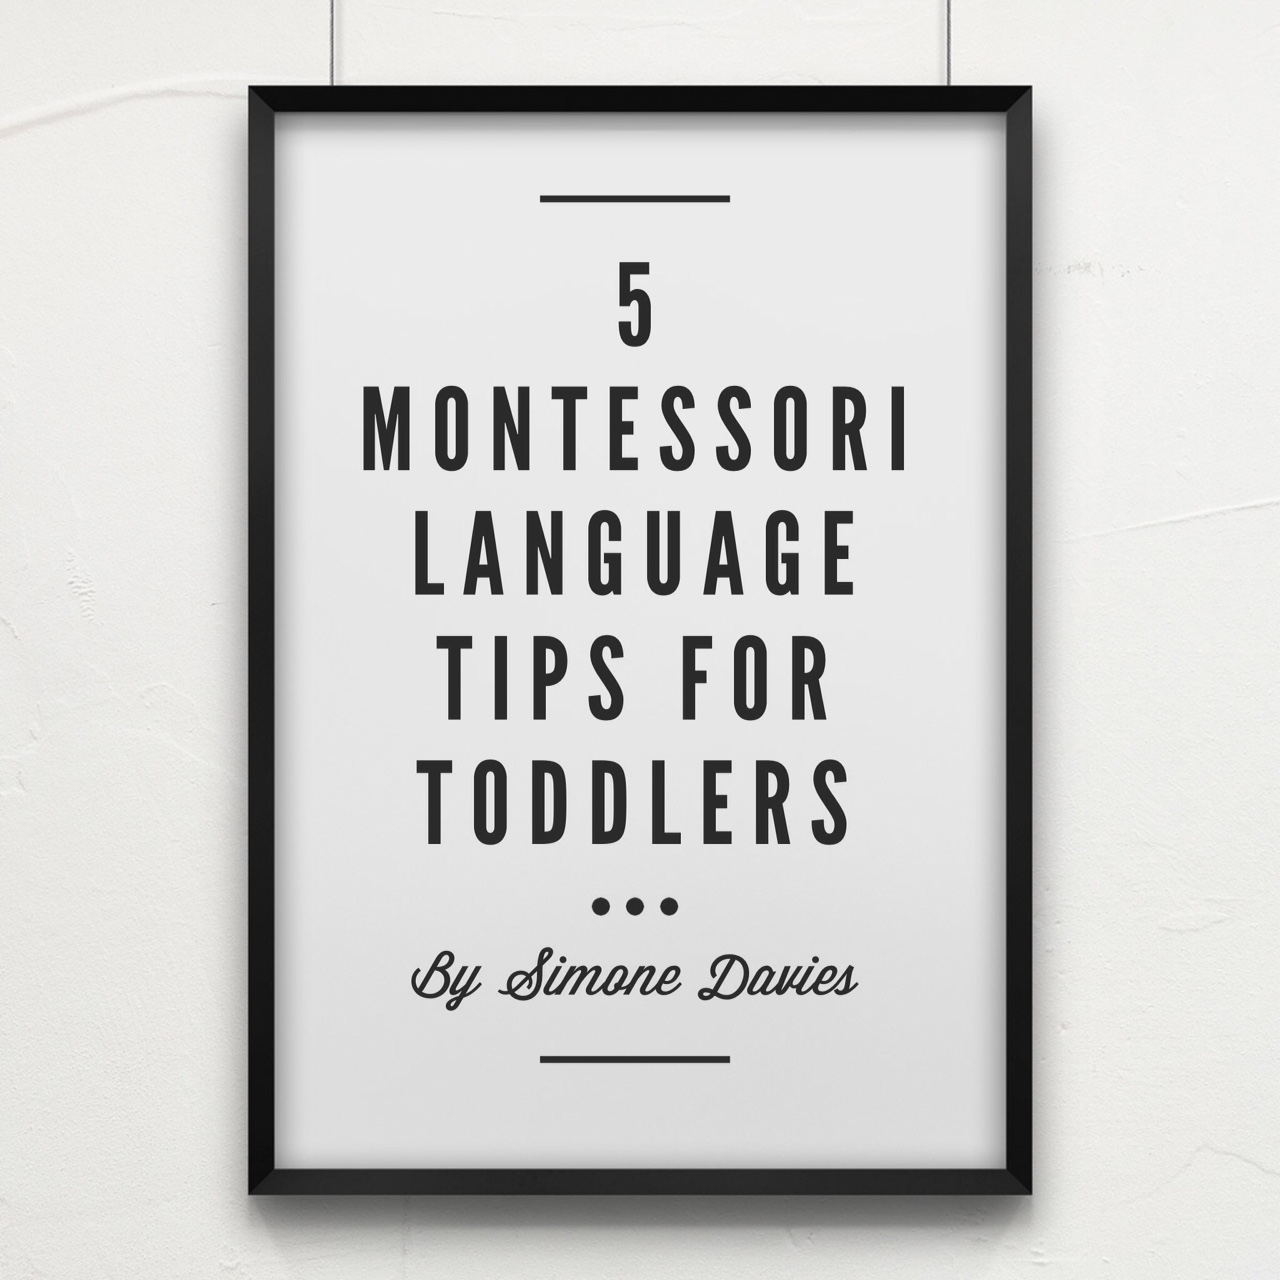 5 Montessori Language Tips For Toddlers